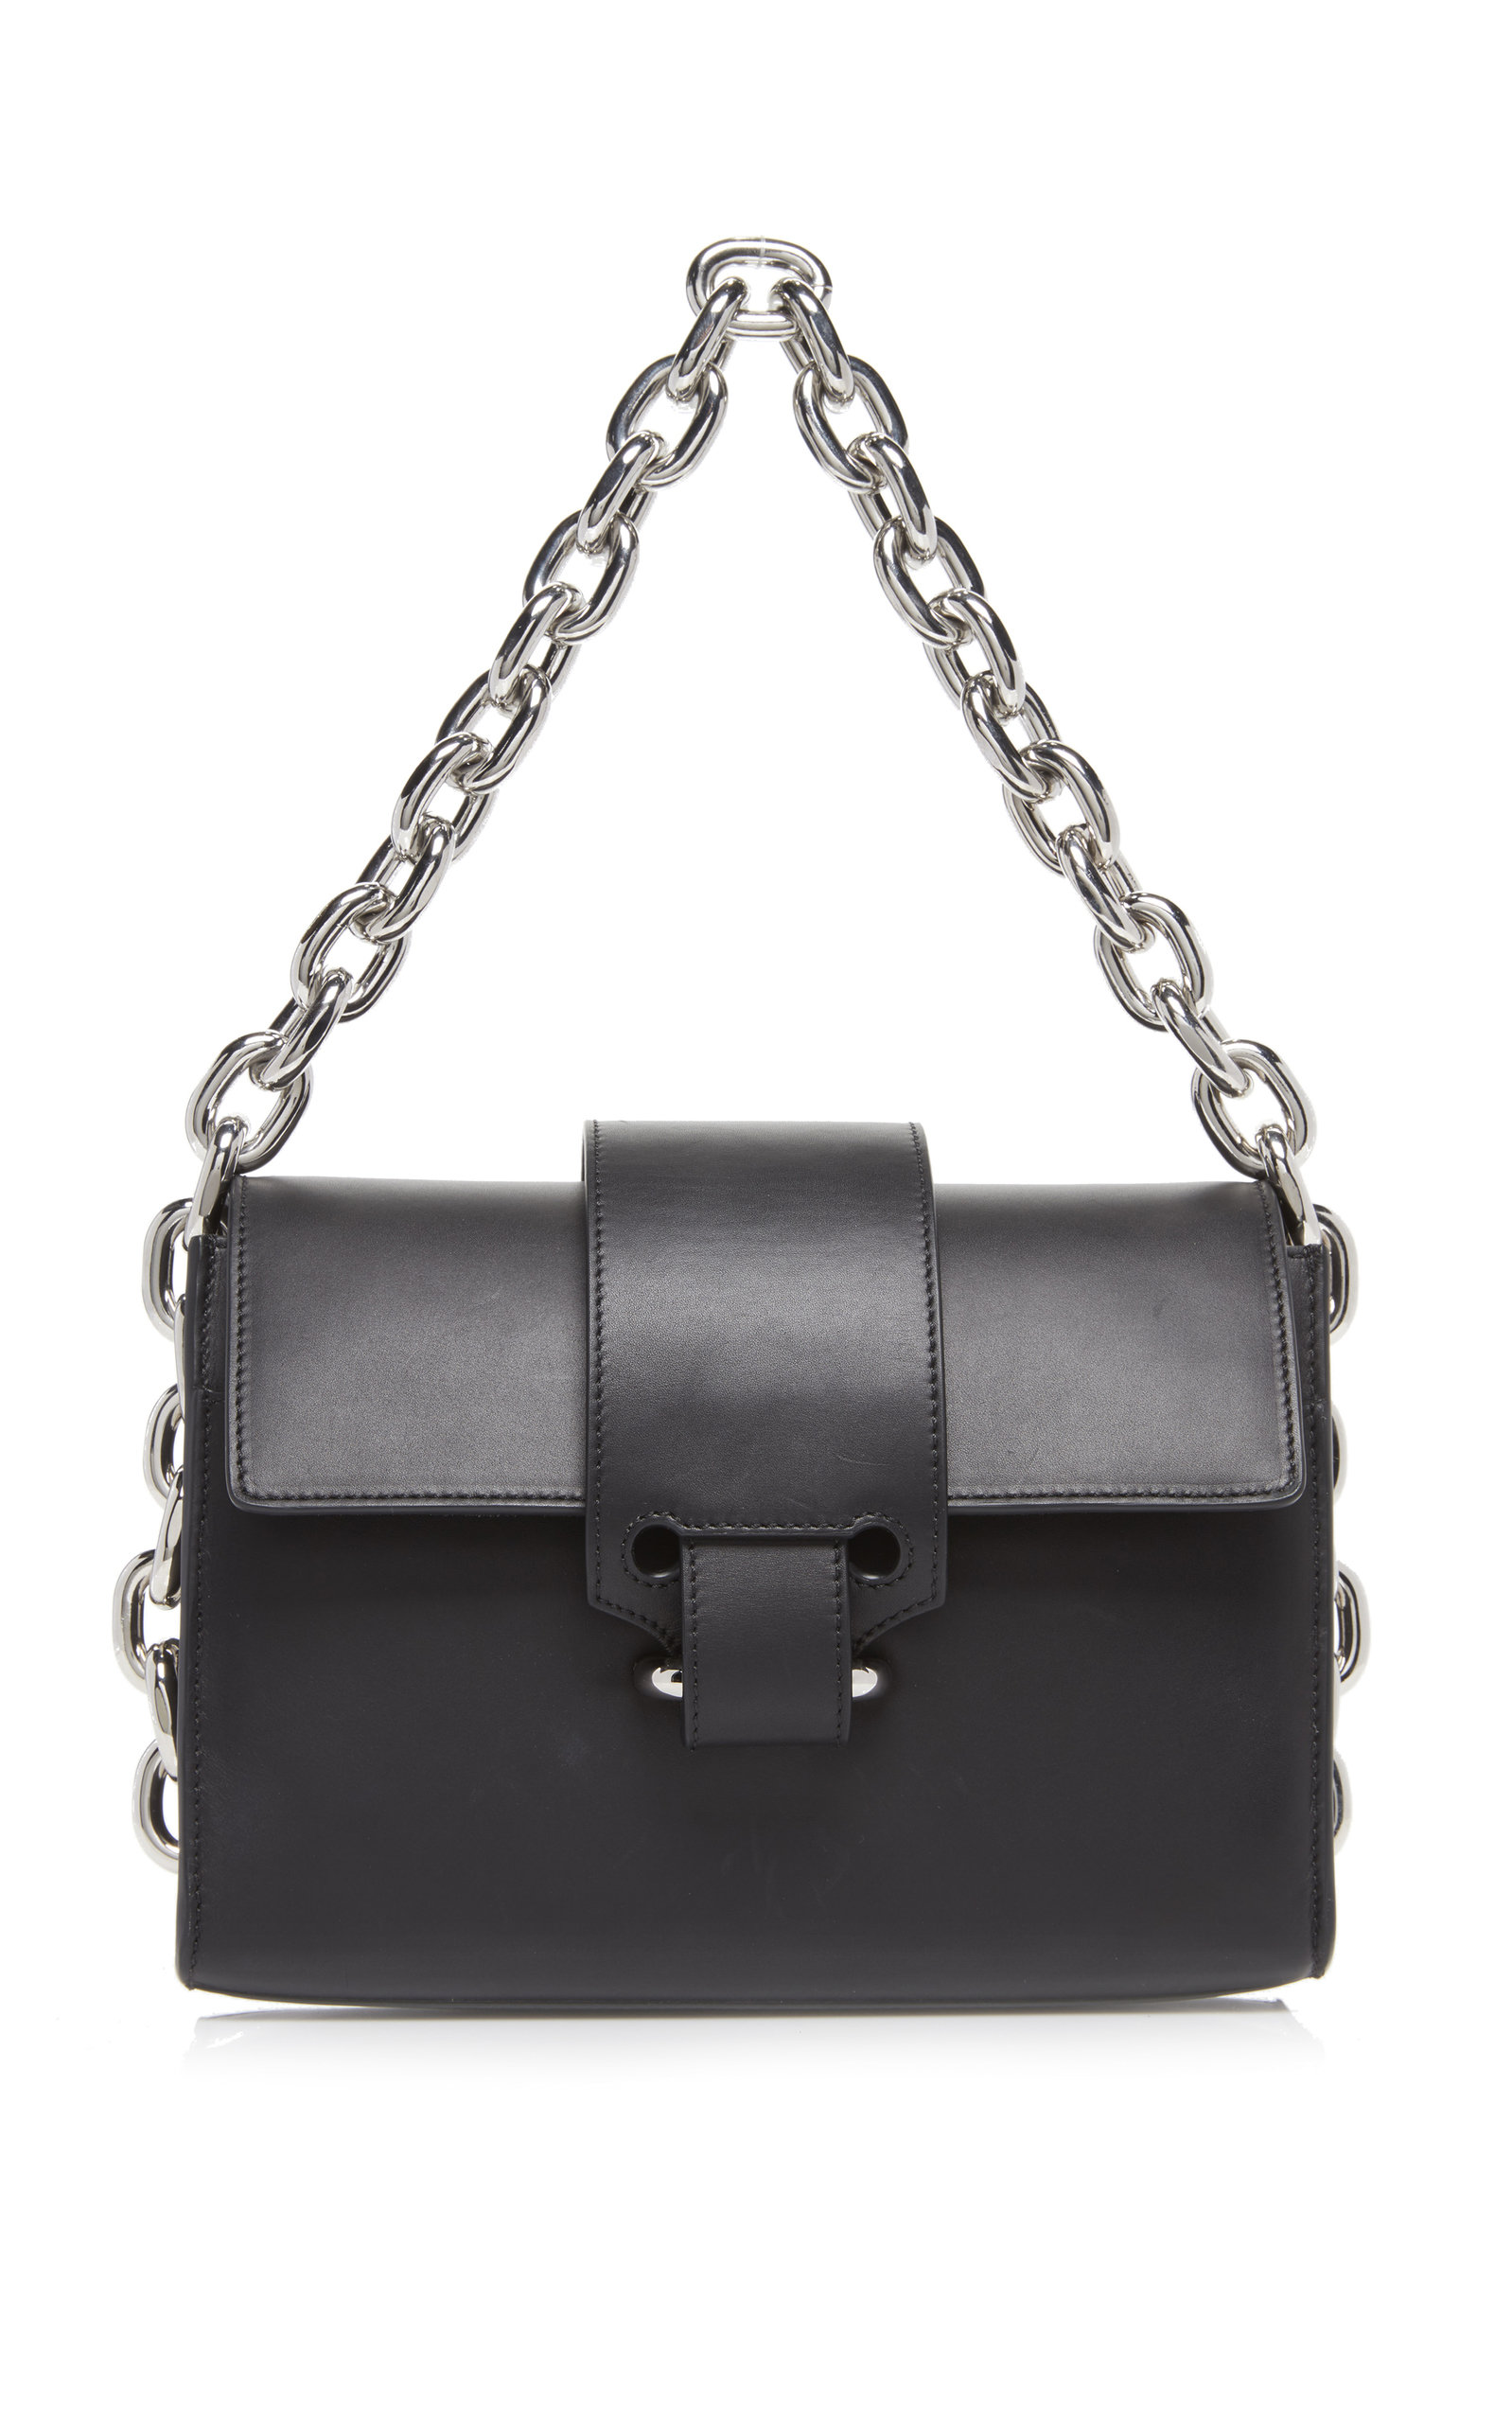 0b9de3eff9a5 Chainlink Leather Shoulder Bag by Paco Rabanne